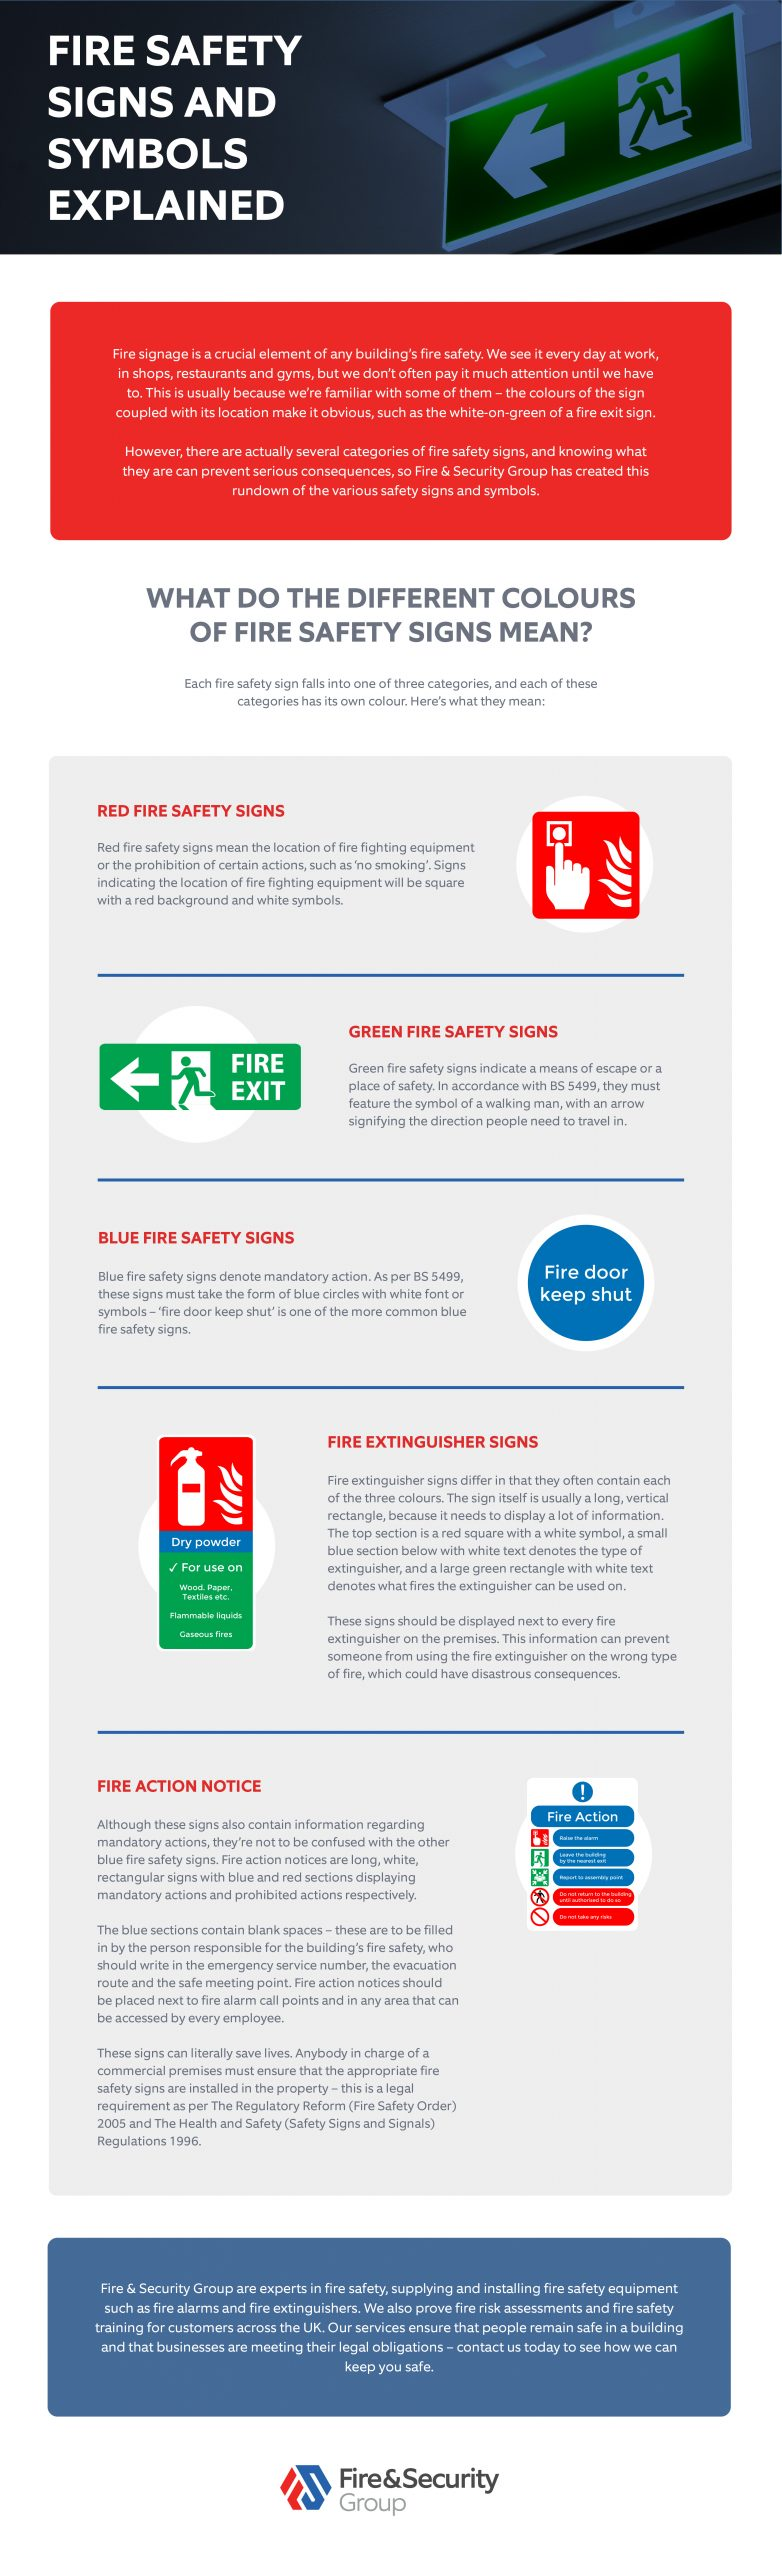 Fire Safety Signs and Symbols Explained